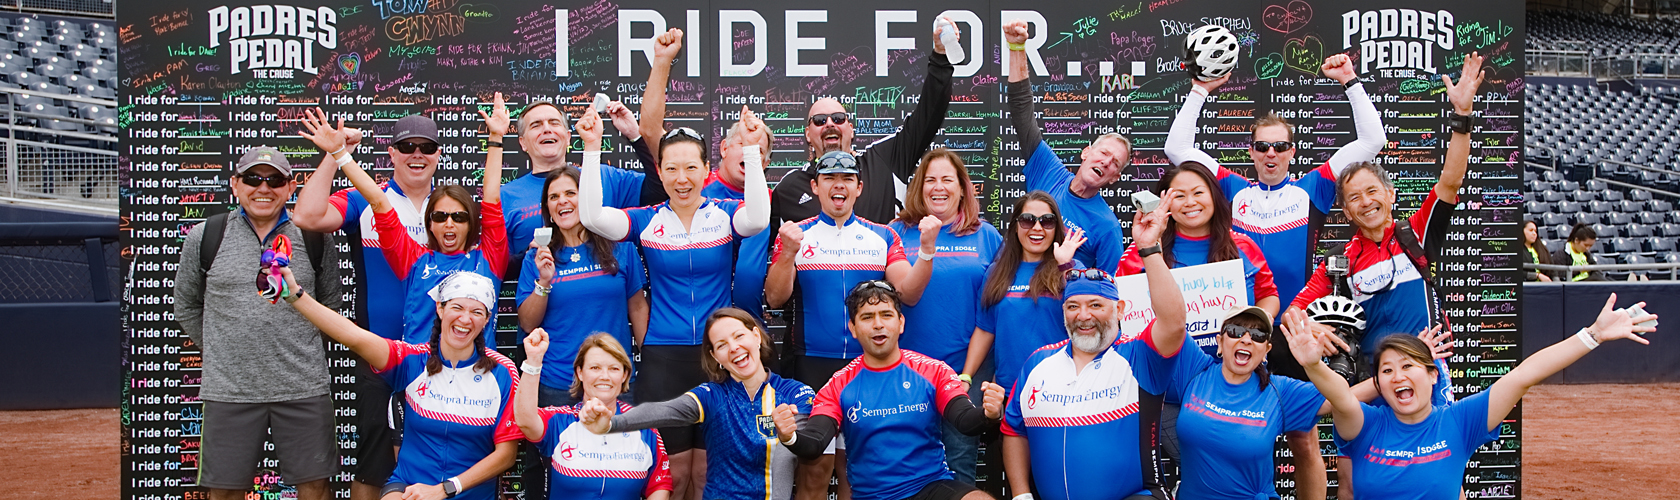 Pedal the Cause 2017